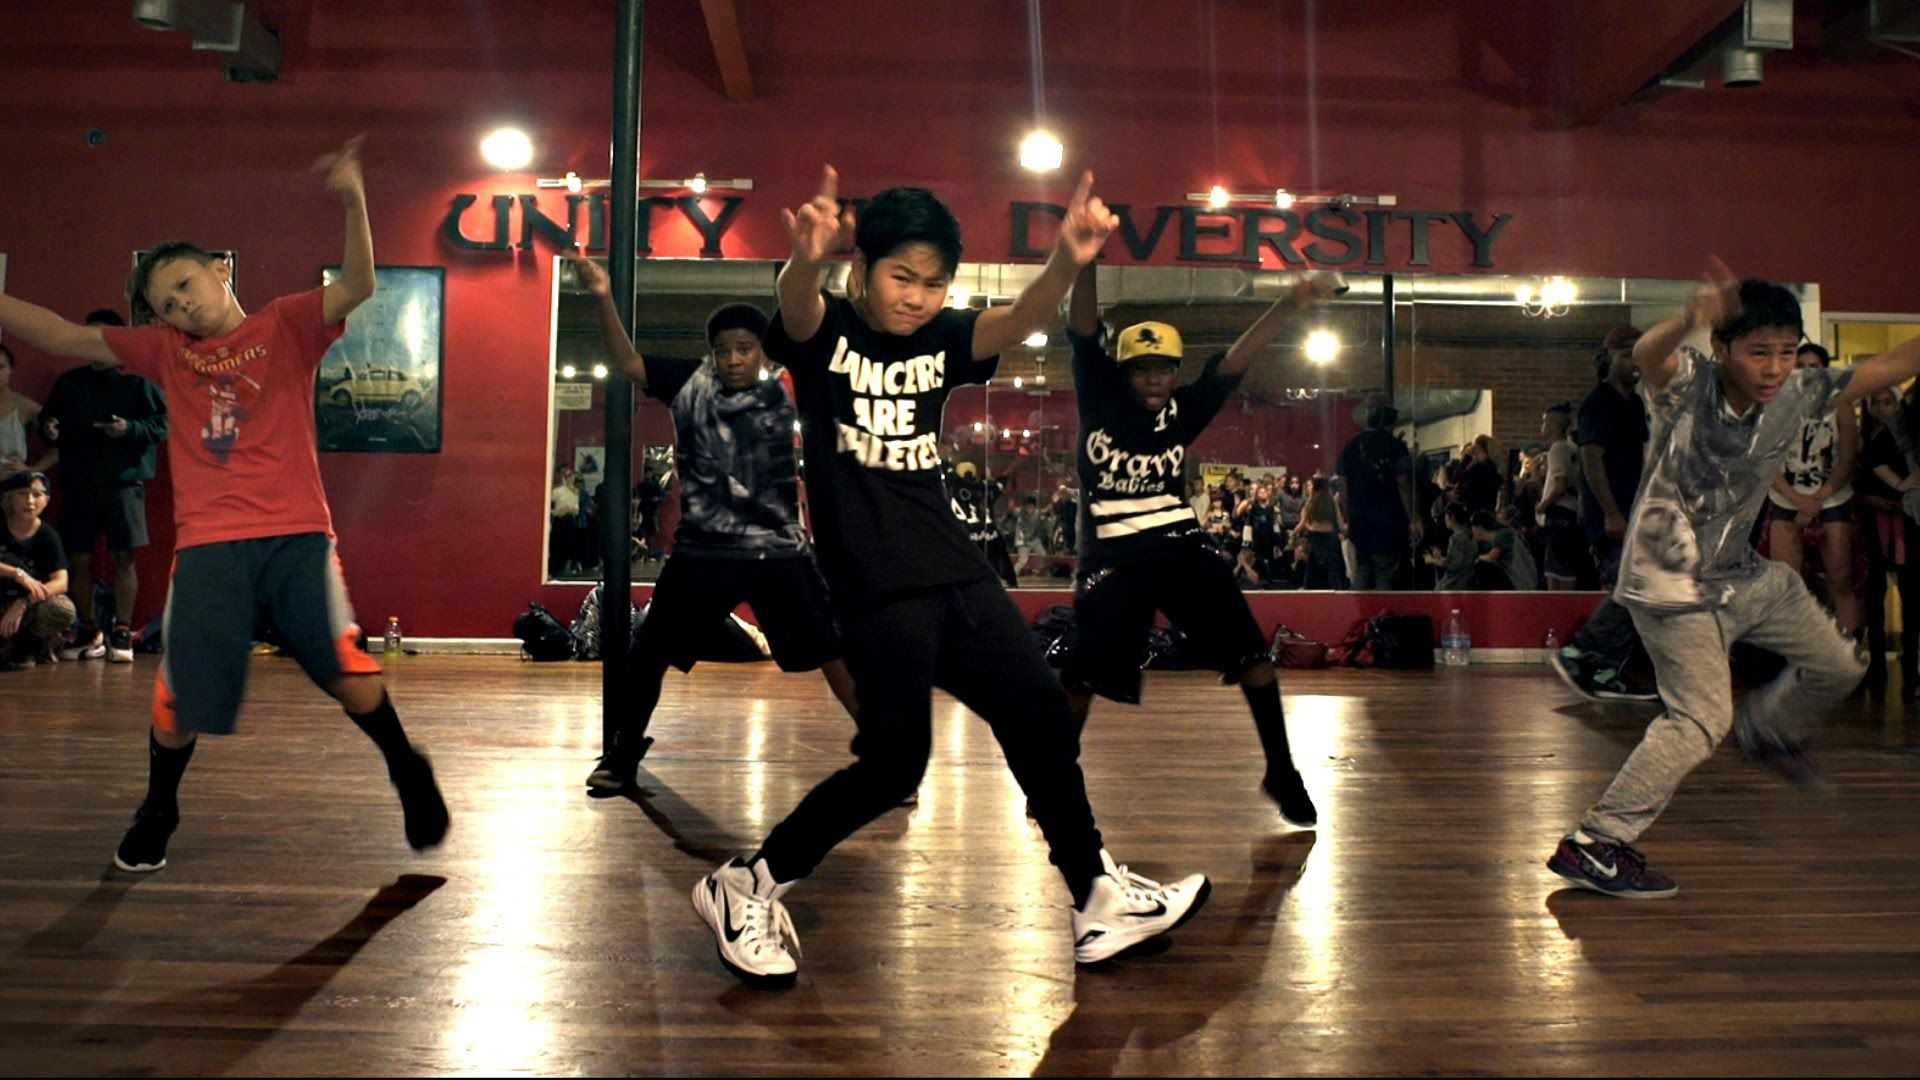 2am adrian marcel choreography by willdabeast adams filmed 2am adrian marcel choreography by willdabeast adams filmed edited by tim milgram voltagebd Image collections